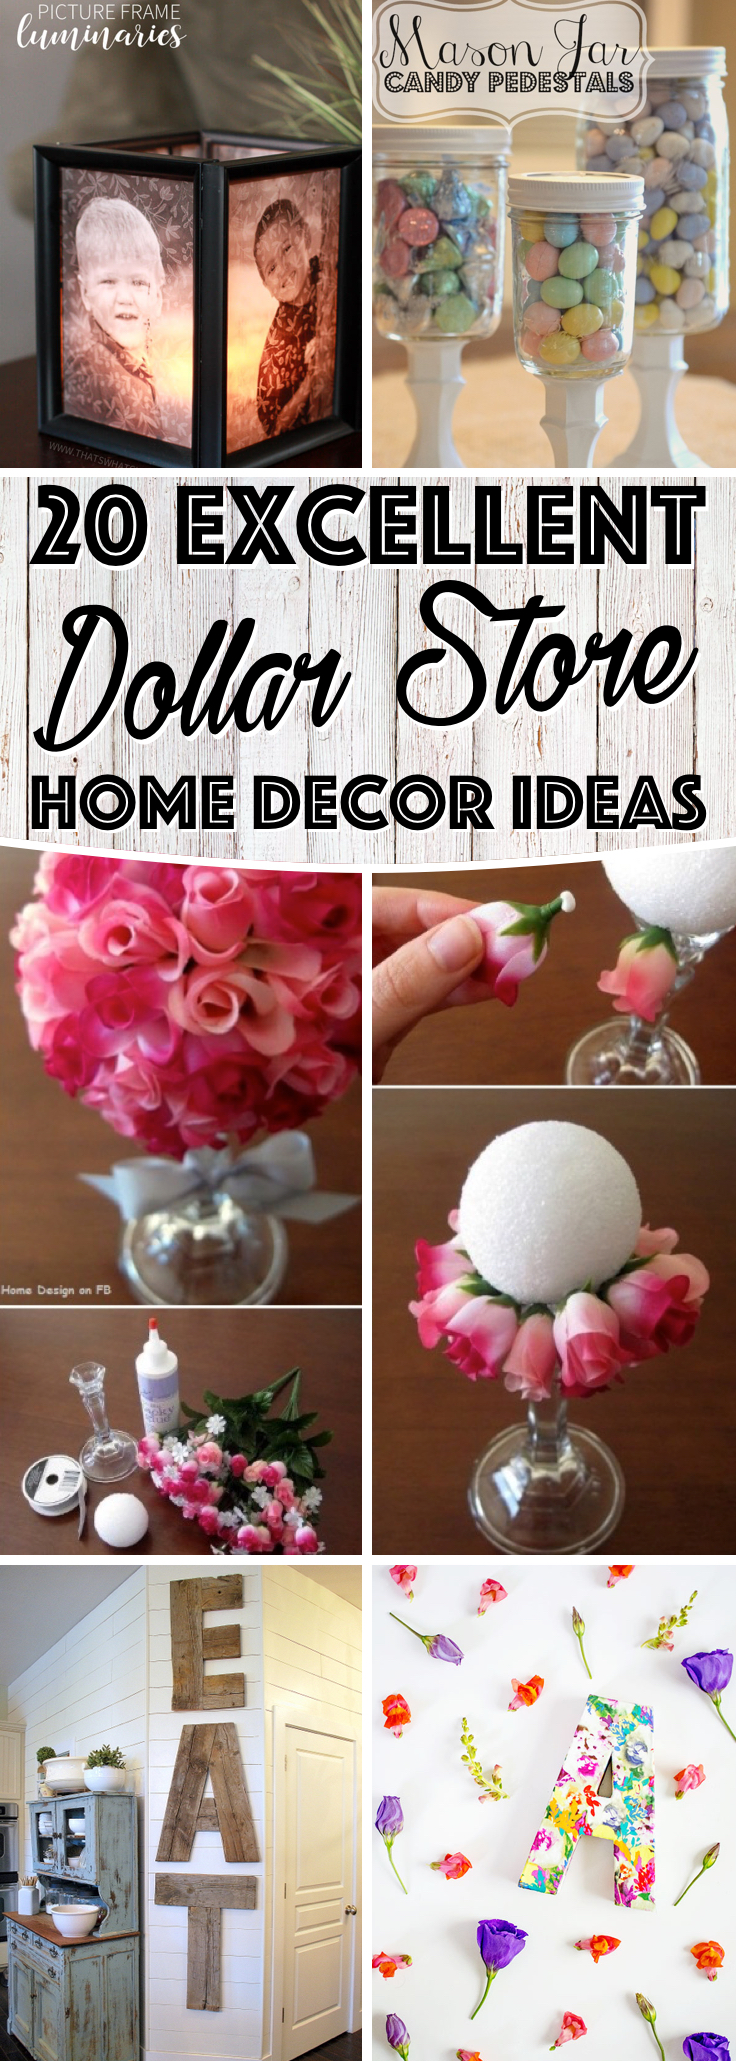 20 excellent dollar store home decor ideas for Home decoration tips